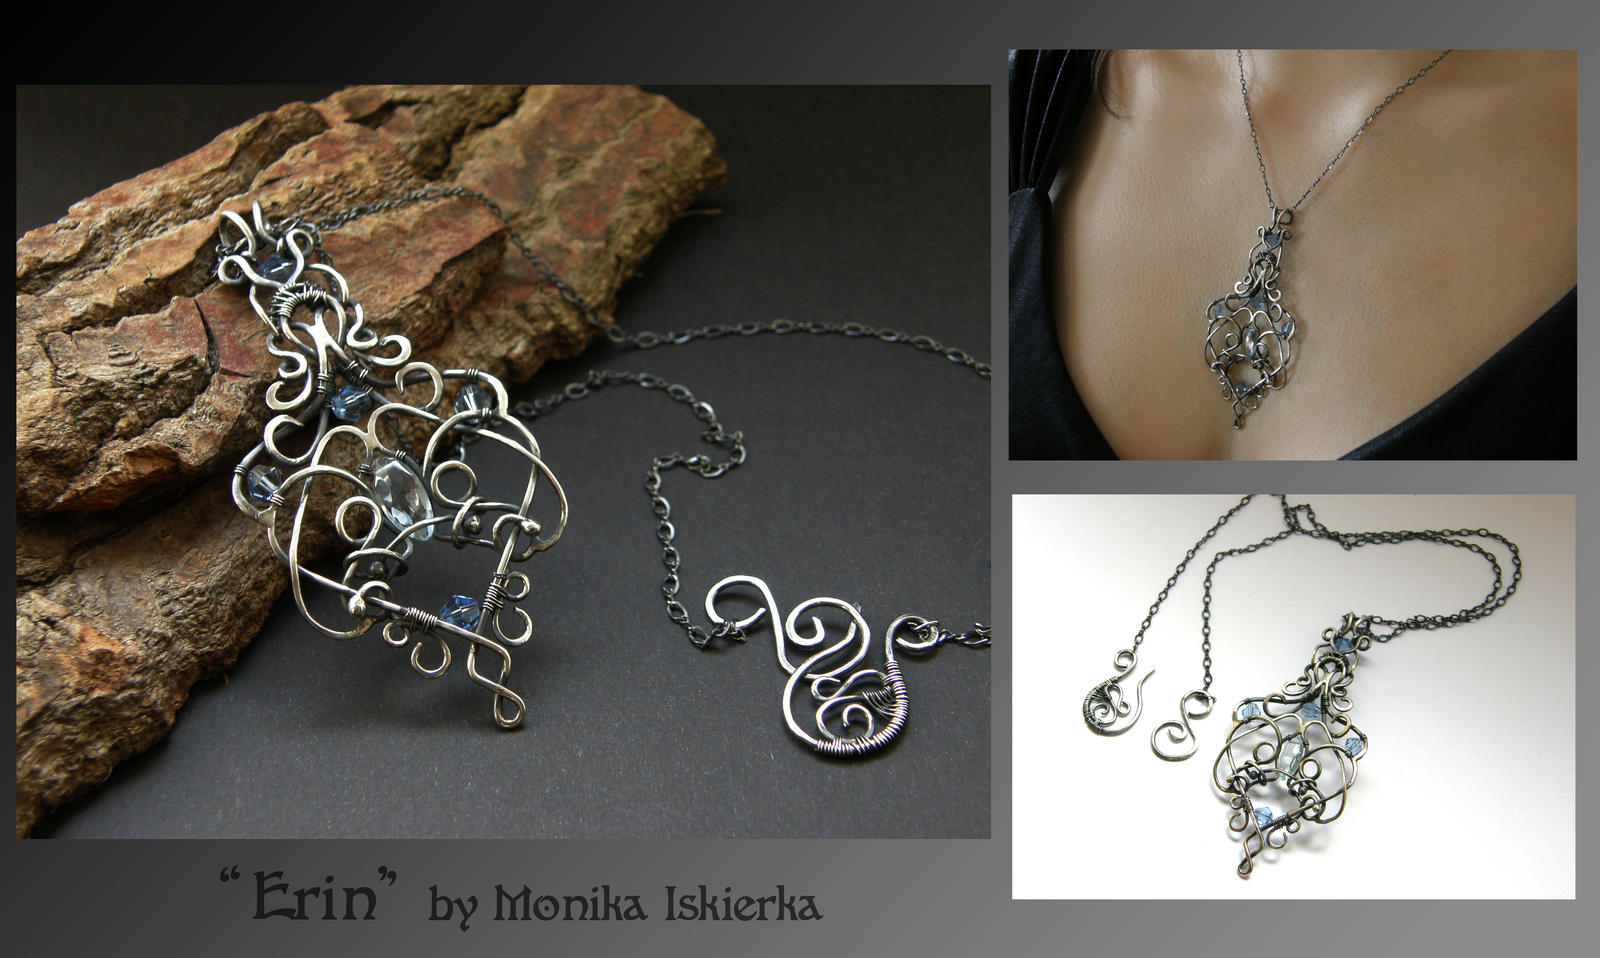 Erin wire wrapped pendant by mea00 on deviantart erin wire wrapped pendant by mea00 aloadofball Choice Image